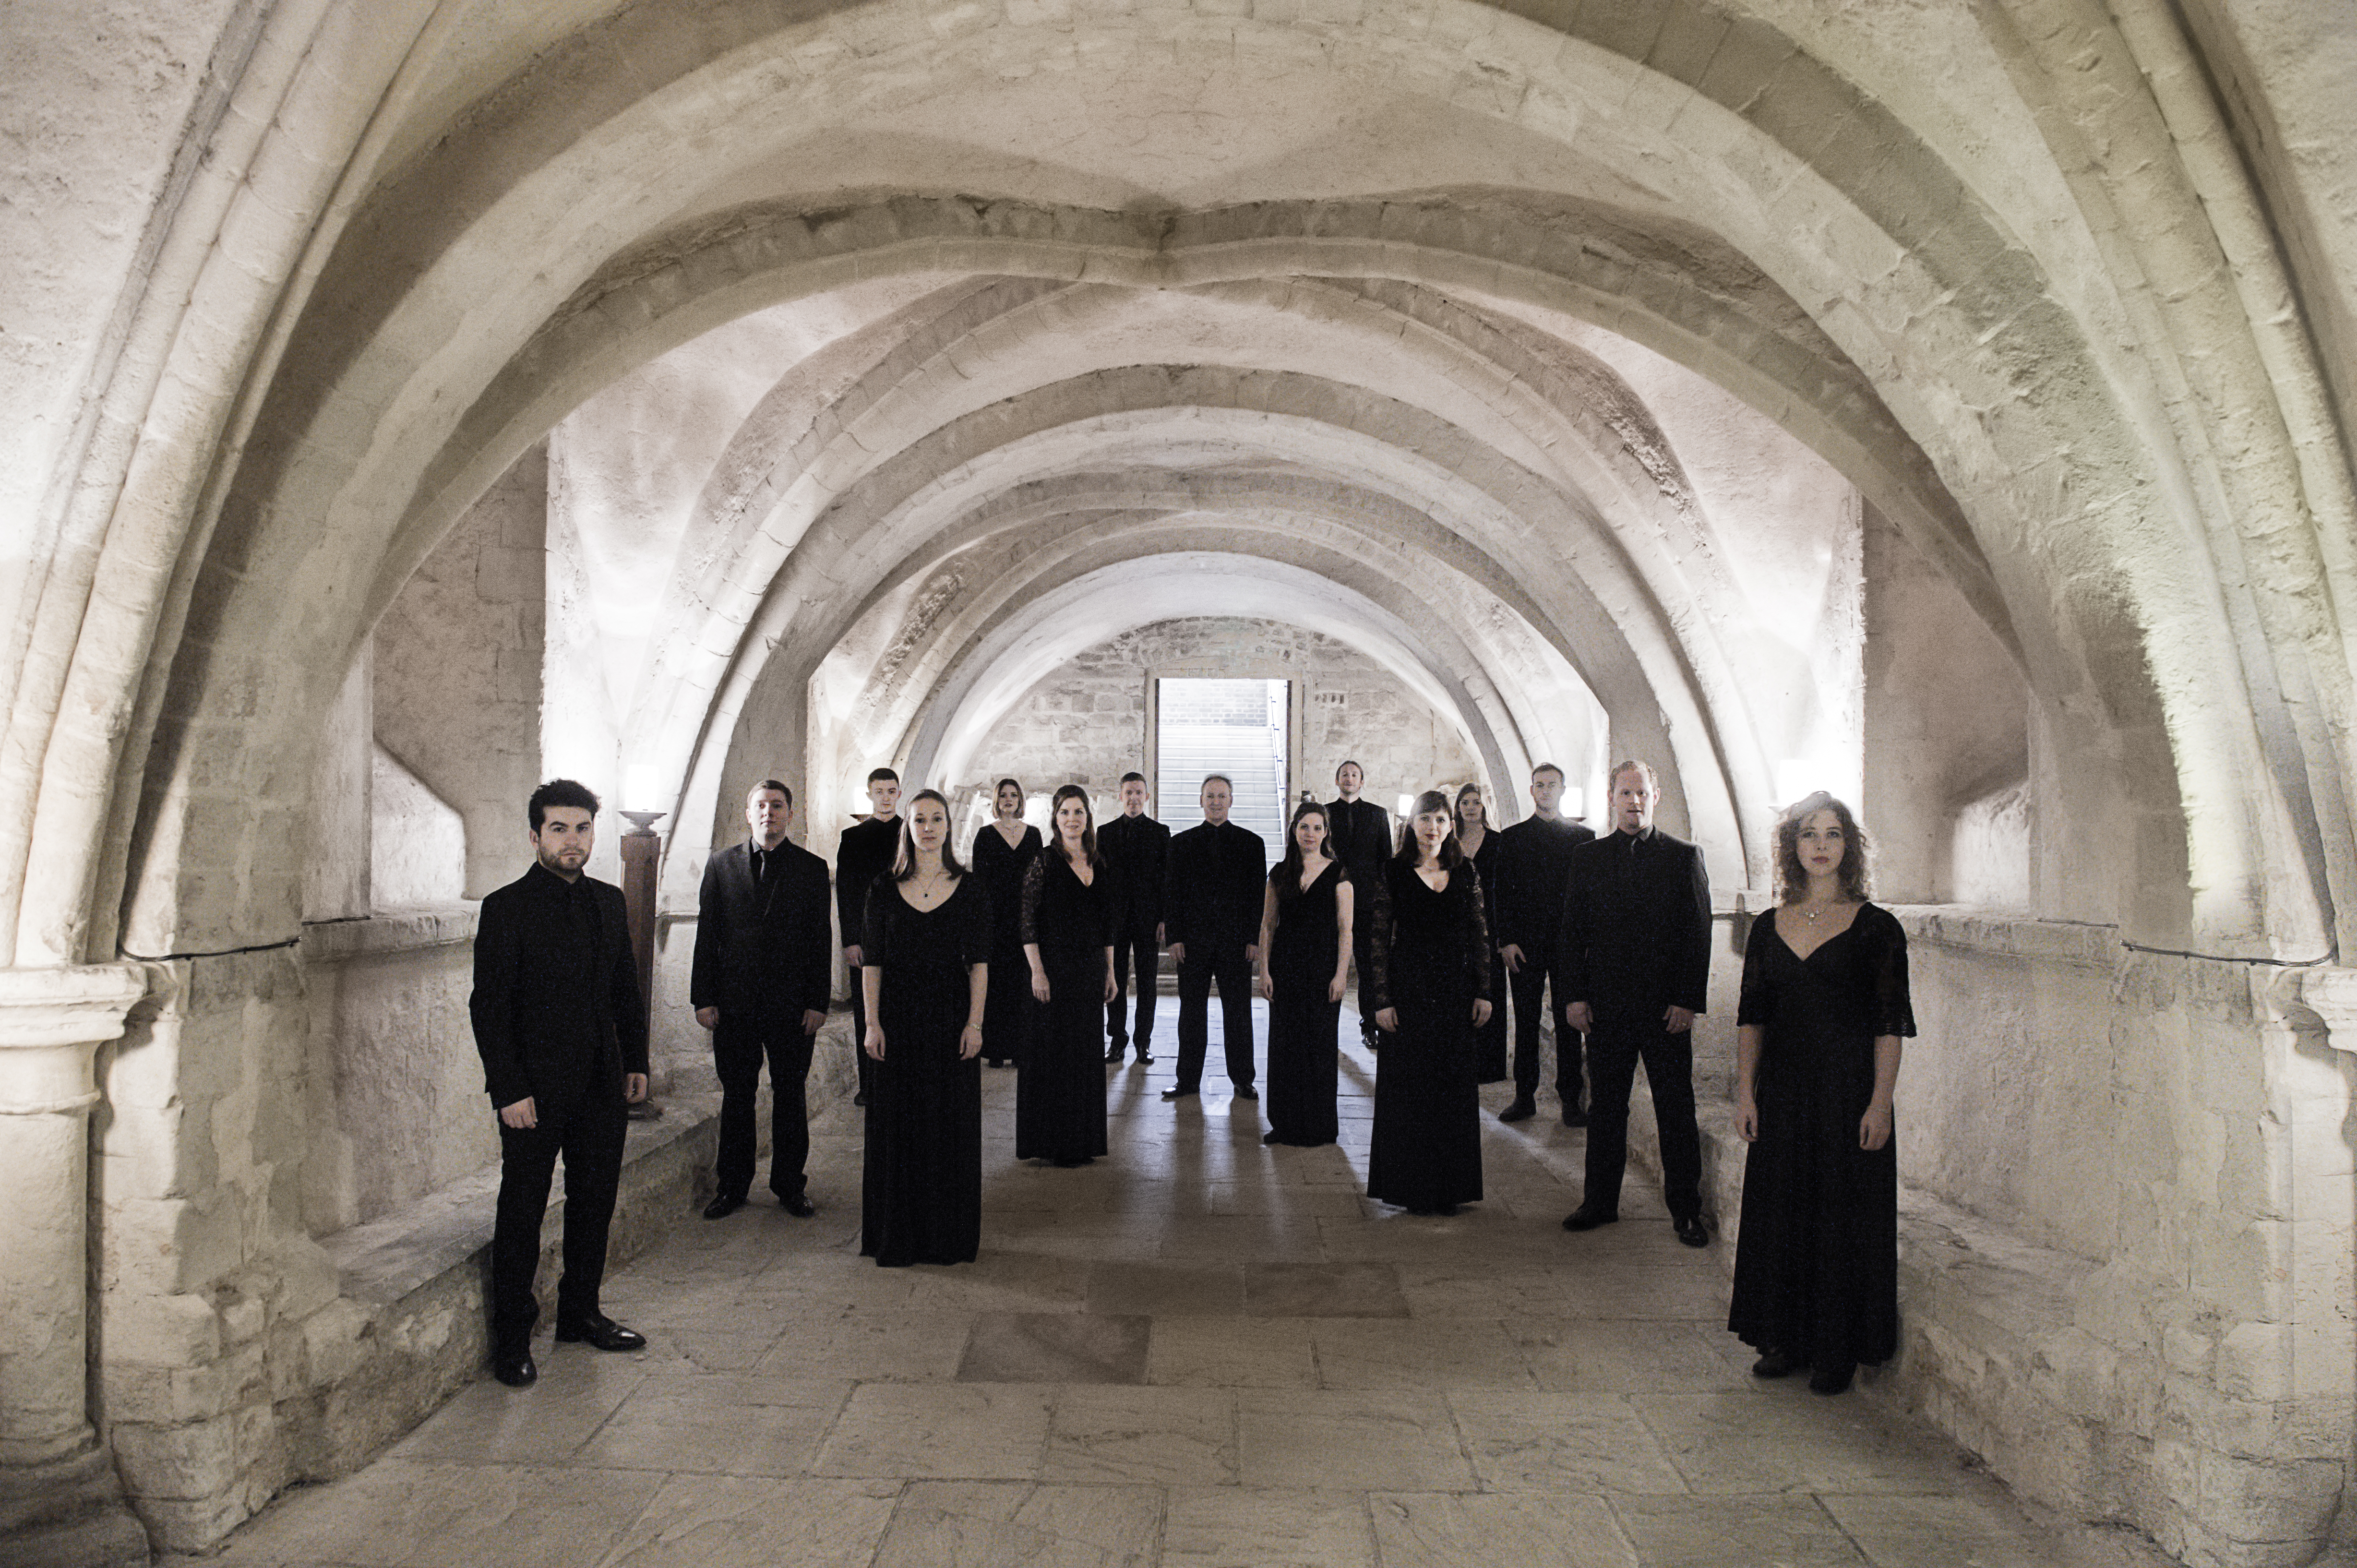 The members of the choir Tenebrae stand wearing black in a brightly lit vaulted stone hallway